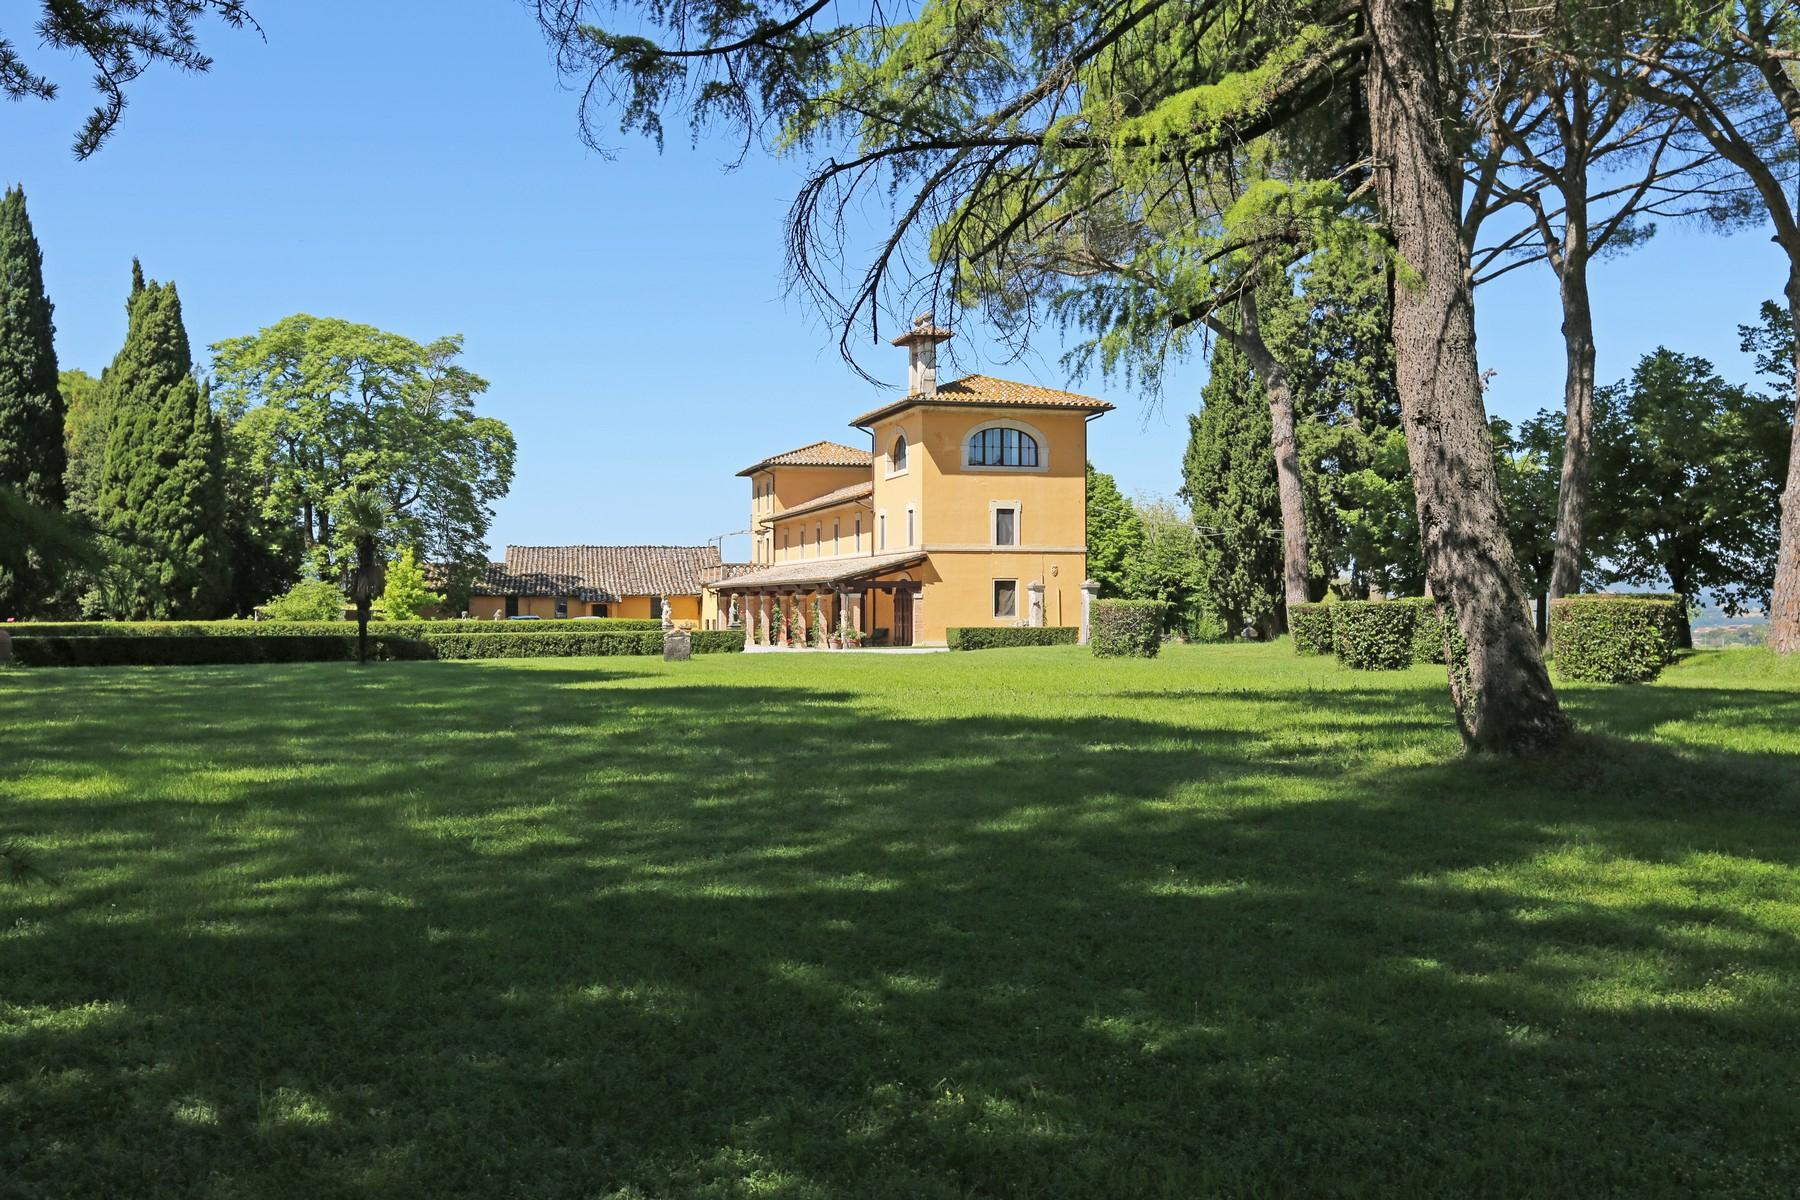 Magnificent historical villa with typical italian garden in Umbria - 17